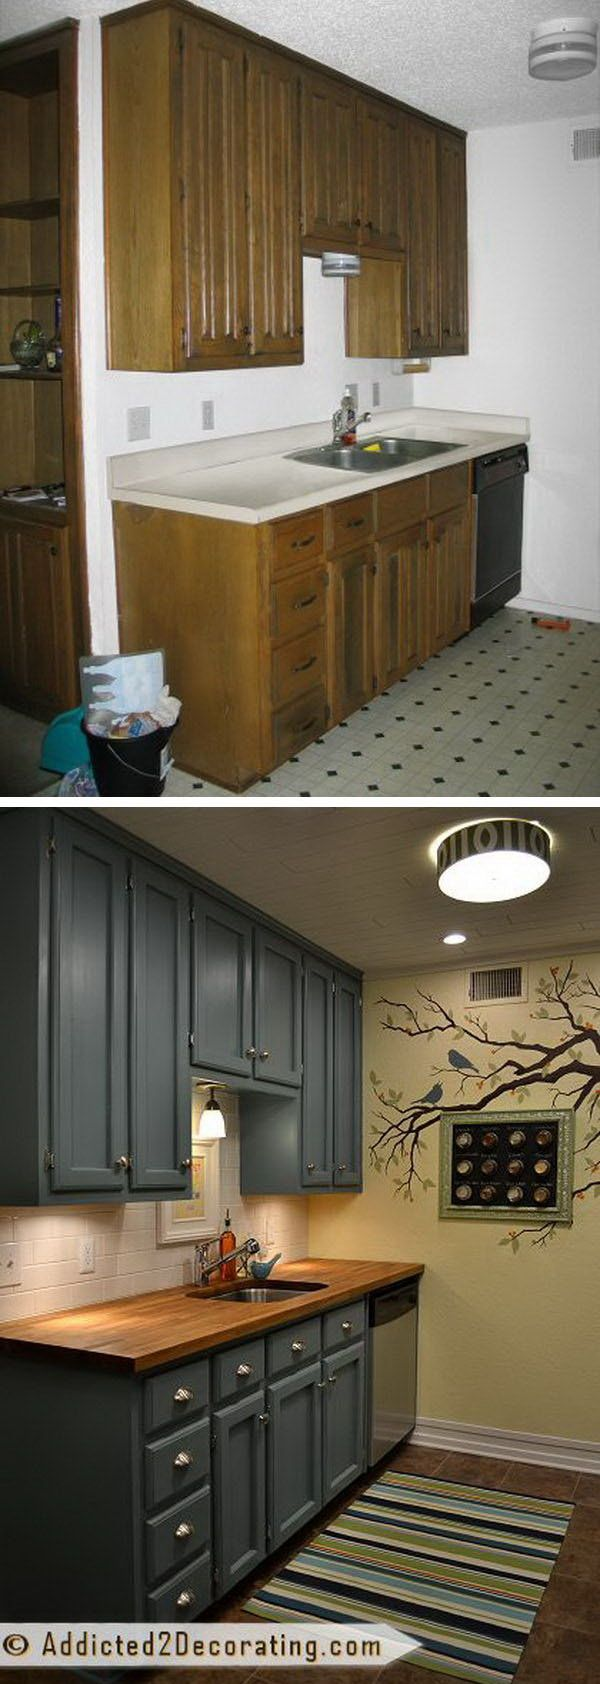 Good Before And After: Teeny Tiny Kitchen Cheap Makeover. What An Amazing  Improvement. Tiny KitchensIdeas For Small ...